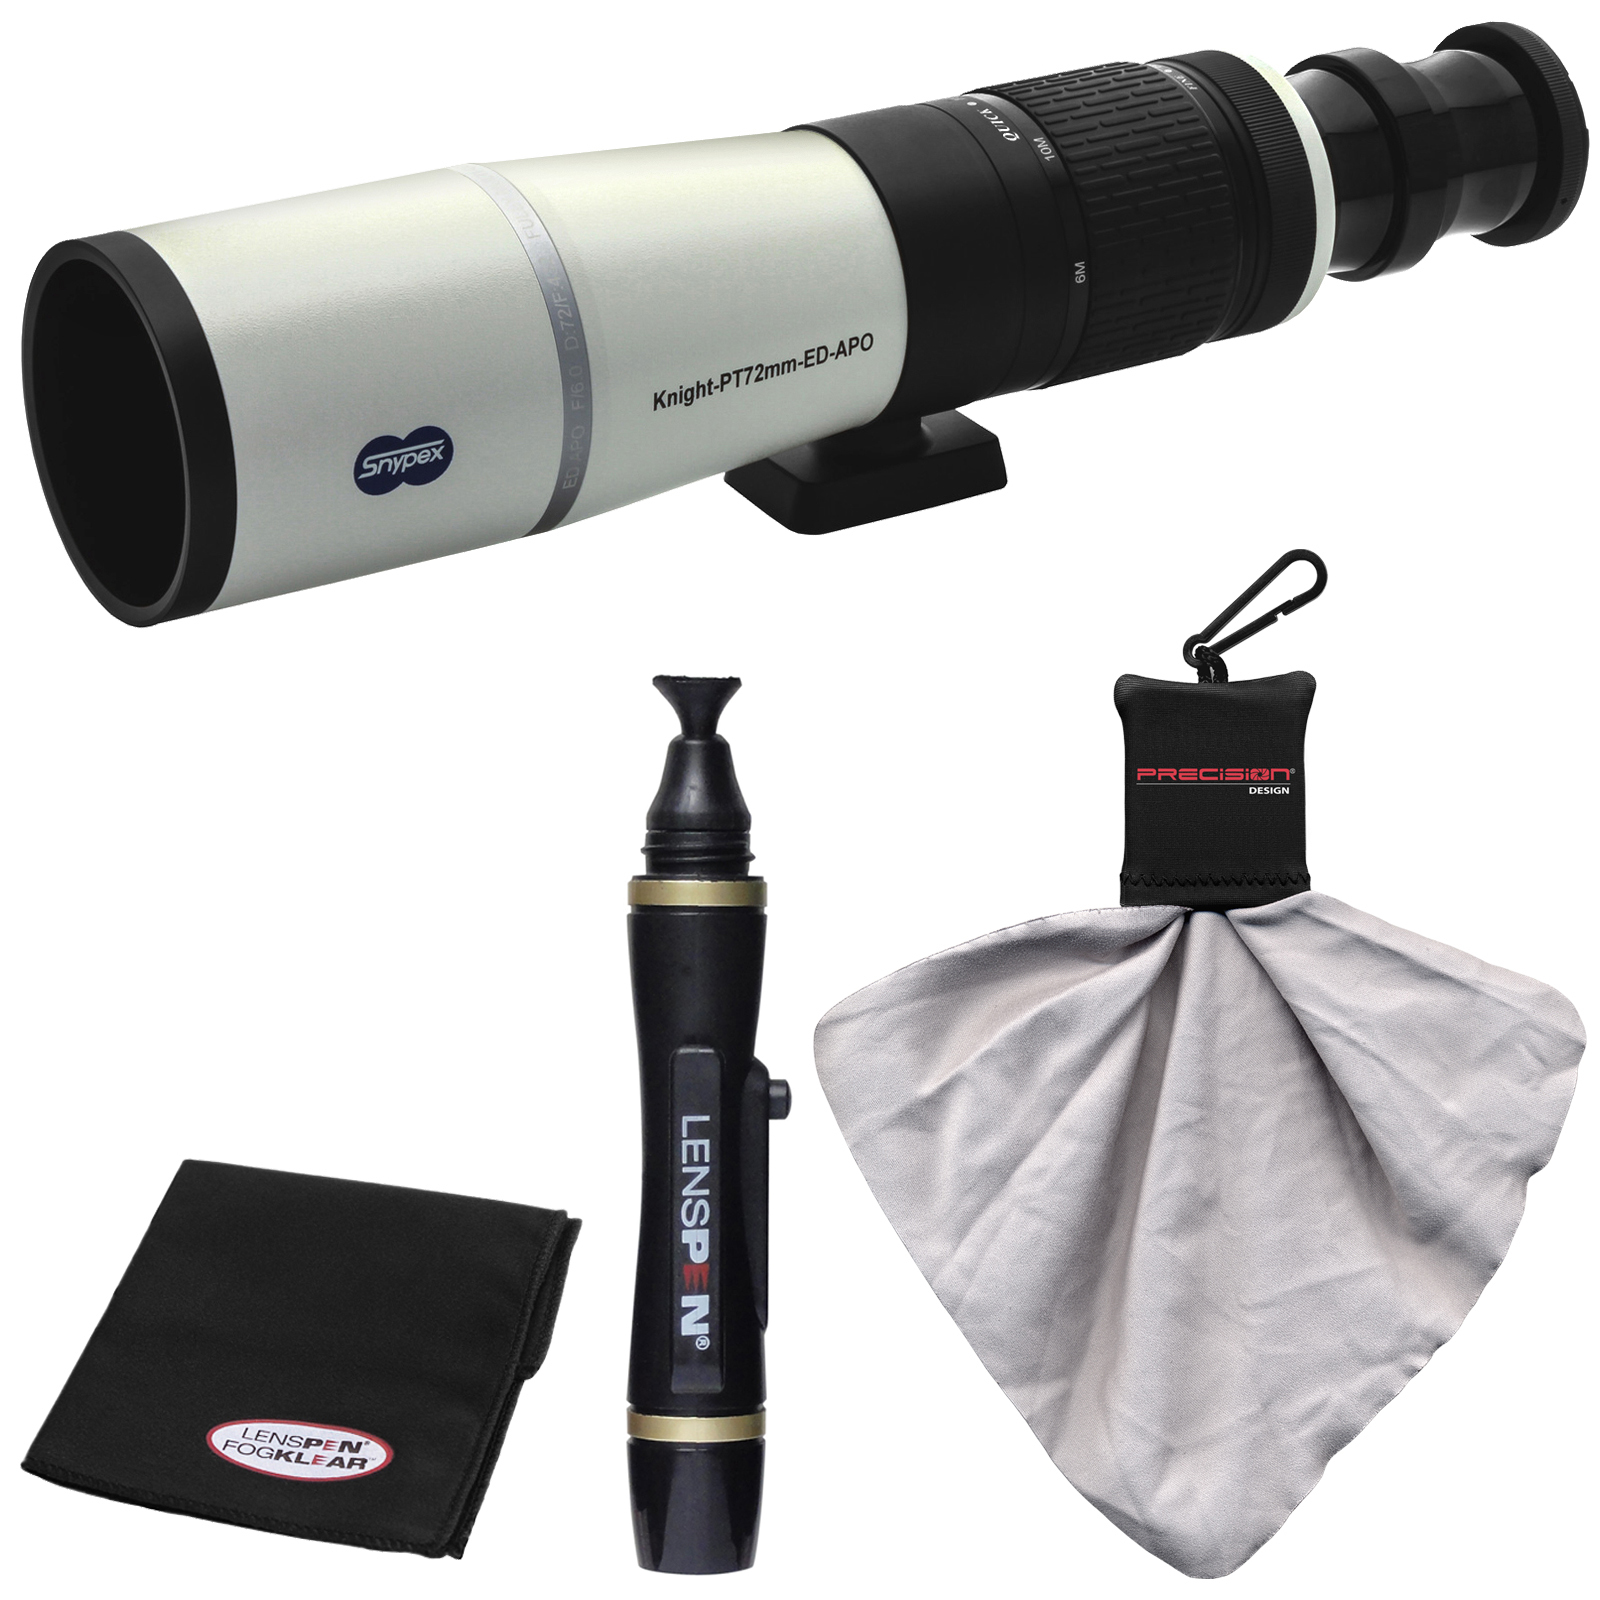 Snypex Knight PT 72mm ED APO Photography Digi-Scope with Hard Case with LensPen + 2 Cleaning Cloths